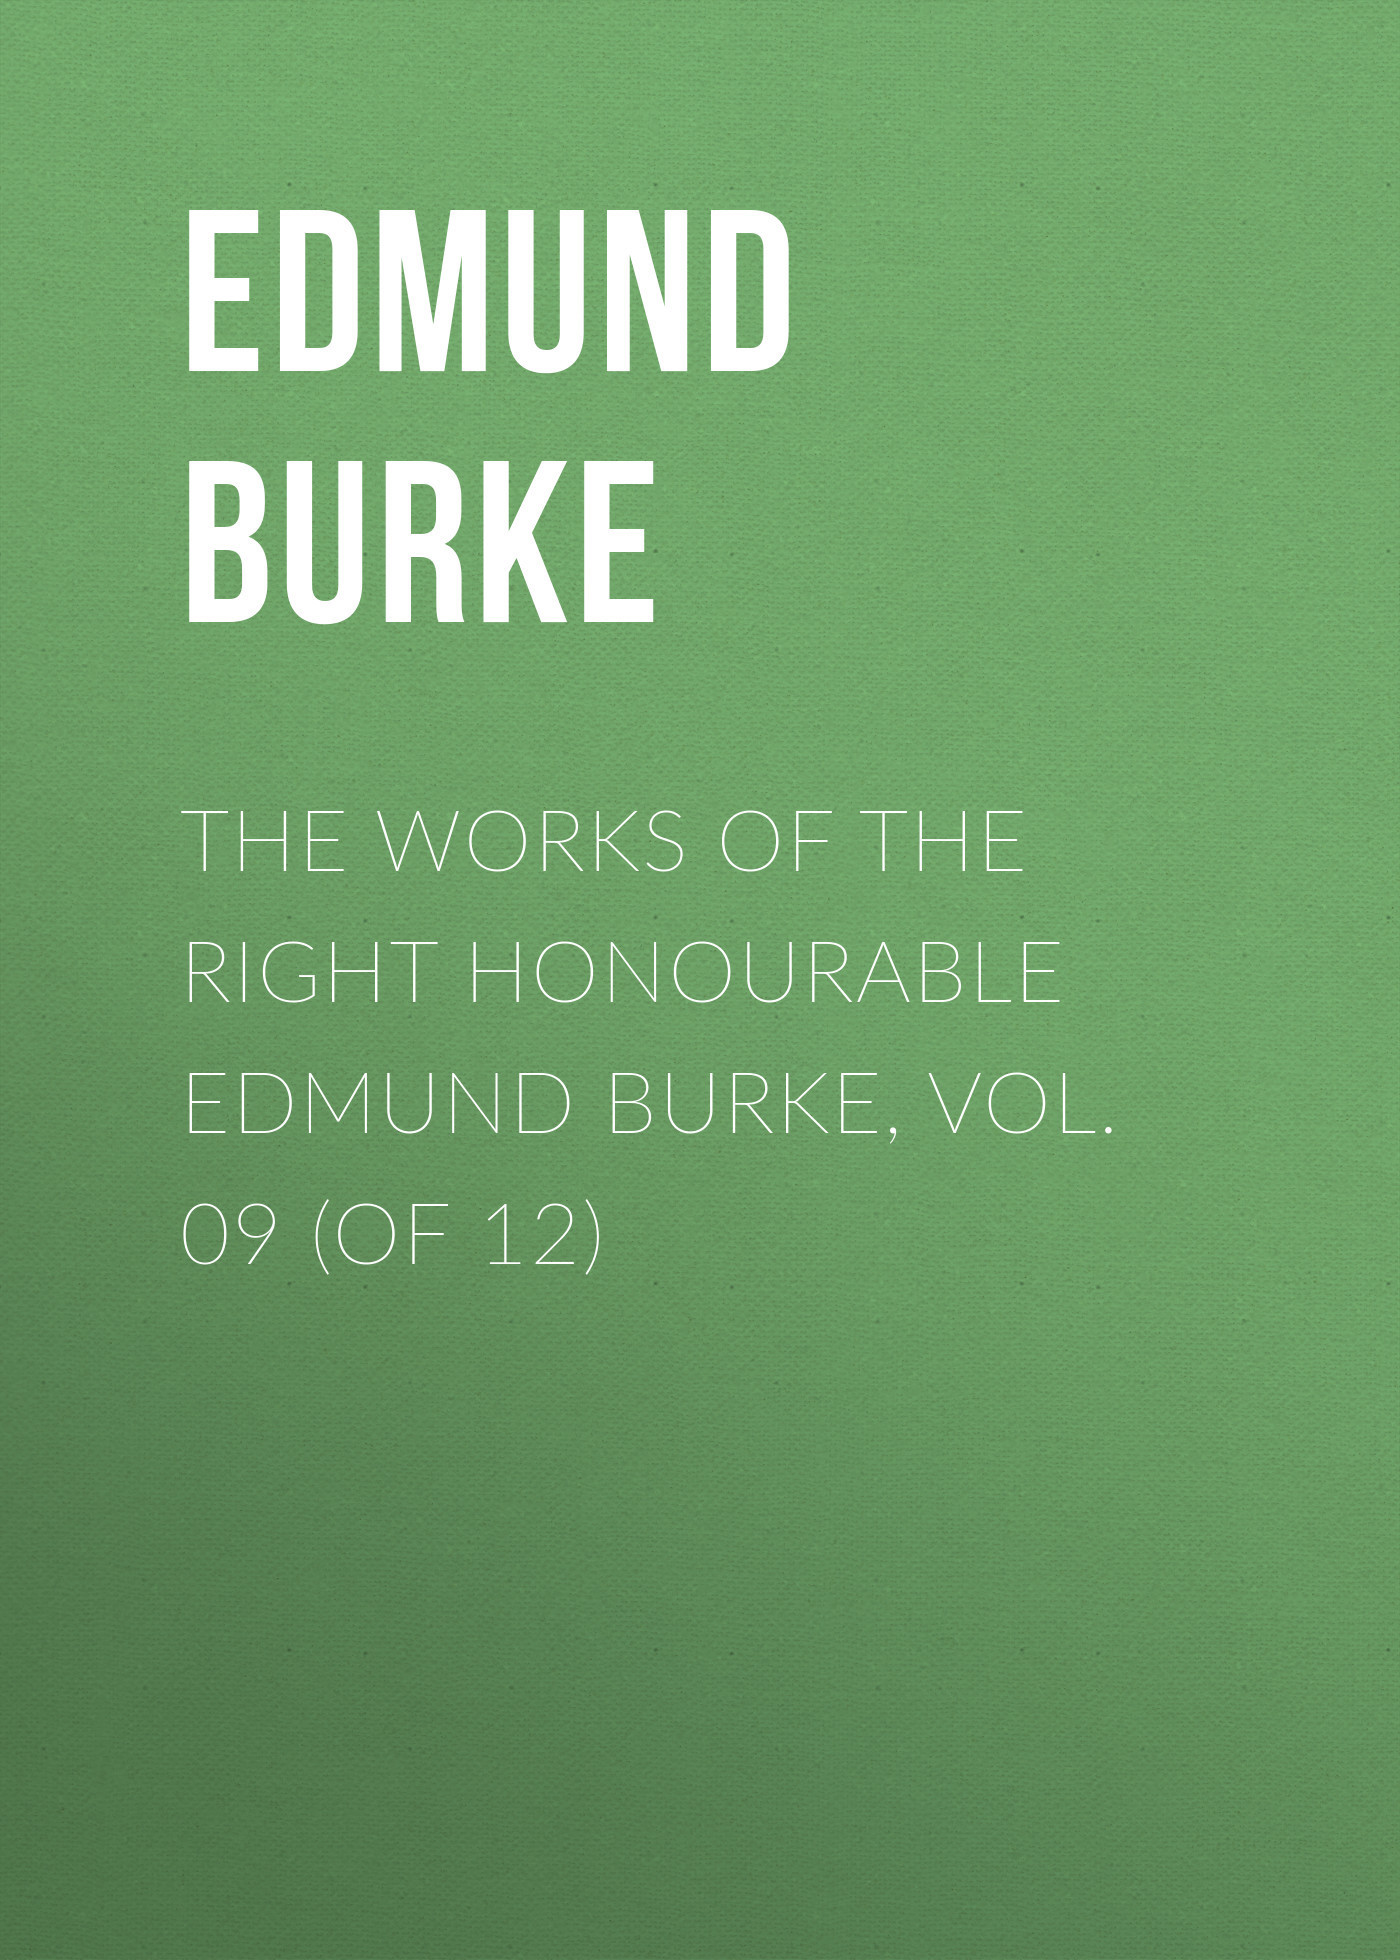 Edmund Burke The Works of the Right Honourable Edmund Burke, Vol. 09 (of 12) new arrival 20w 2500lm epistar cob chip h1 led head lights bulb 12v 24v auto car daytime running light headlights 6000k white